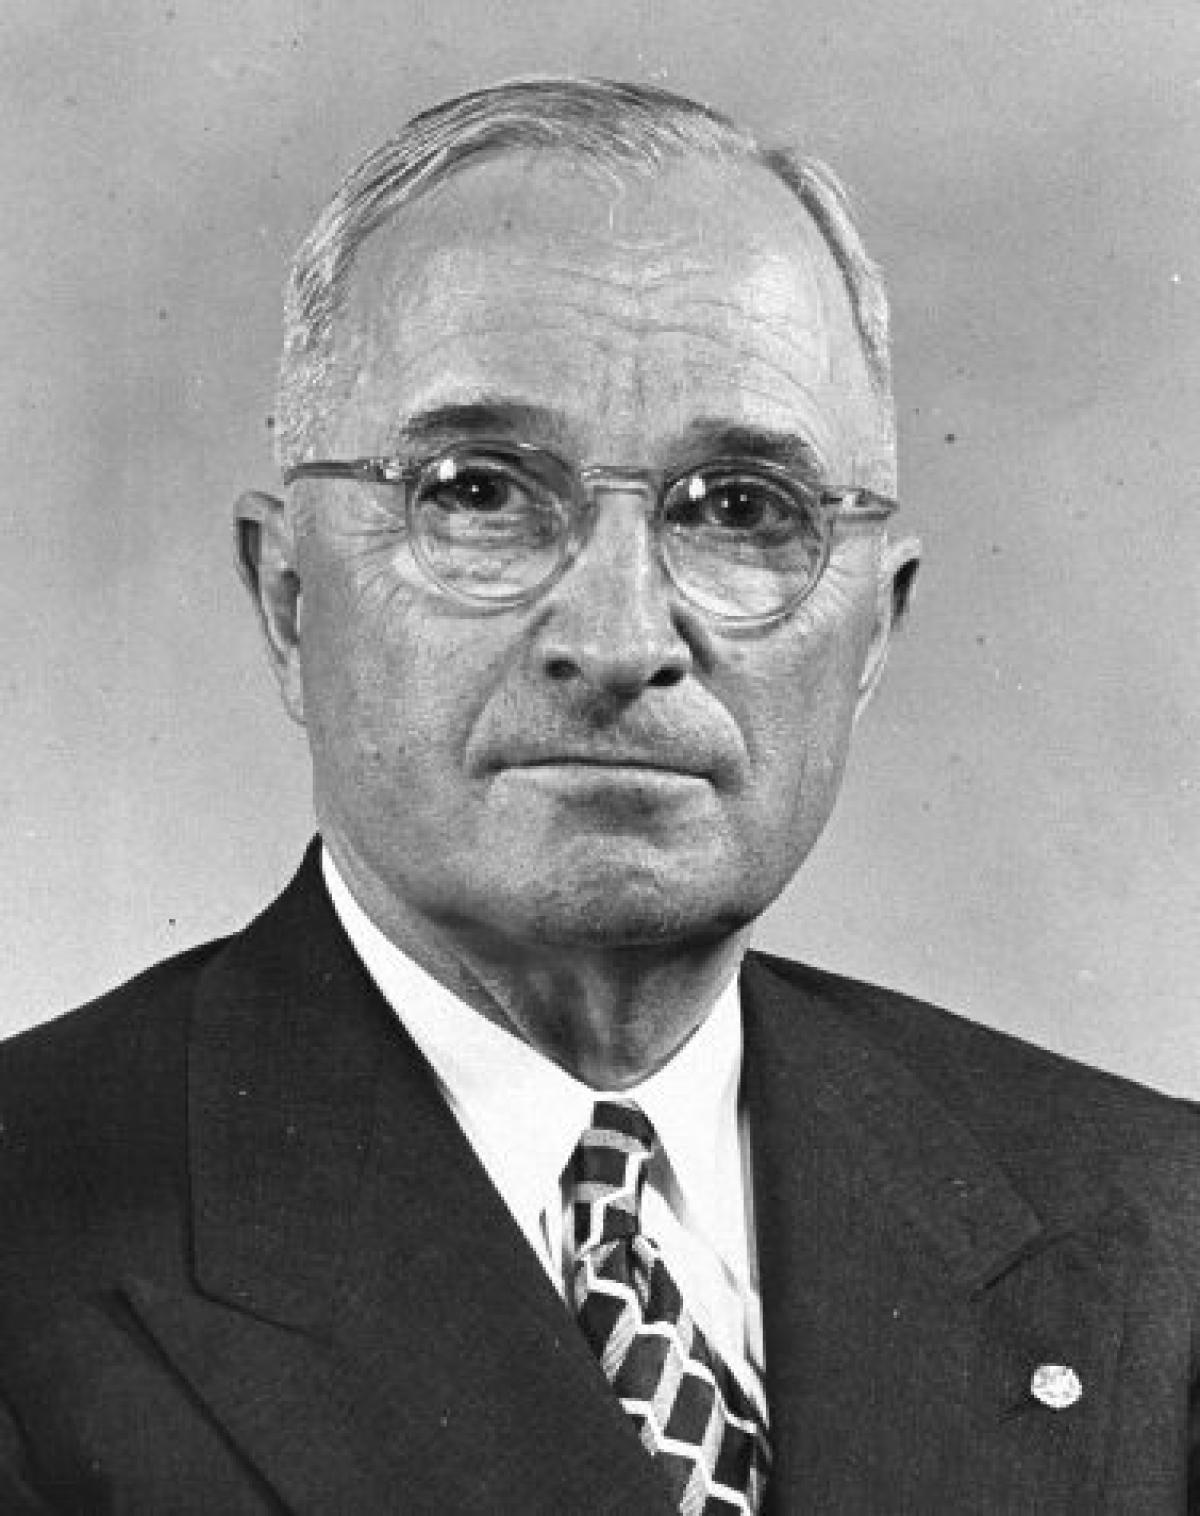 a history of harry s truman as a president of the untied states of america President harry s truman 33rd us president from 1945-1953  by white  house historical association, adapted by newsela staff  in office and on april  12, 1945, truman became the 33rd president of the united states.